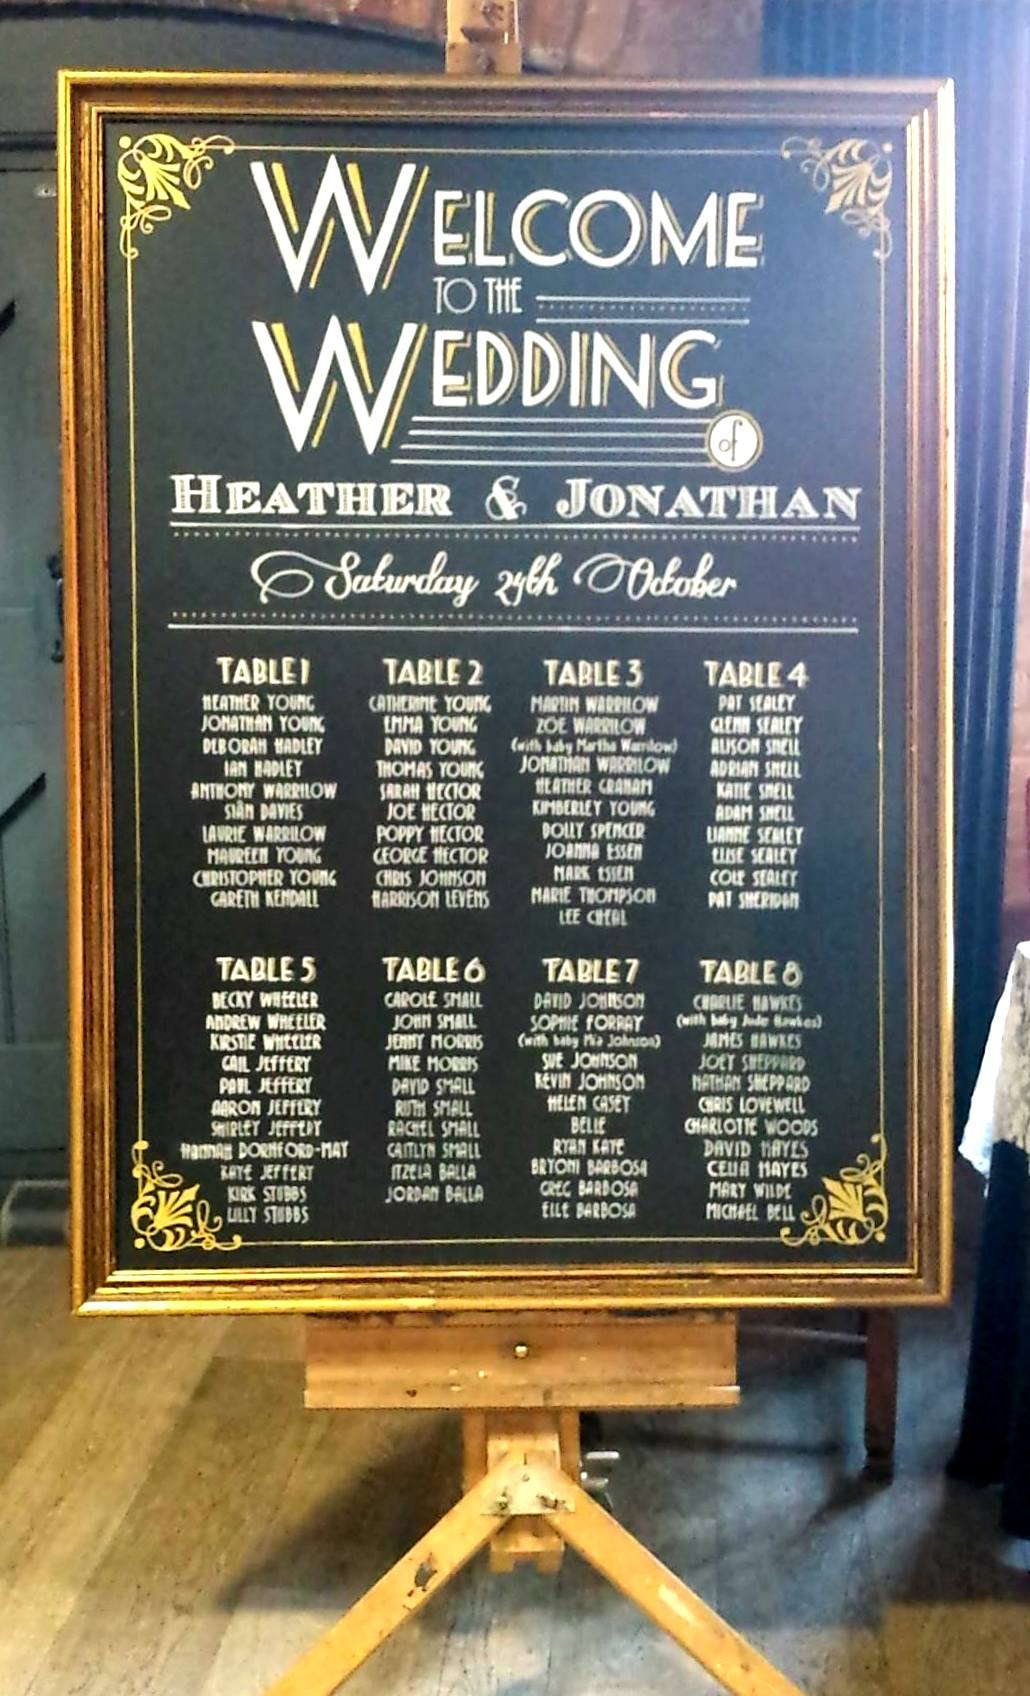 Heather & Jonathan